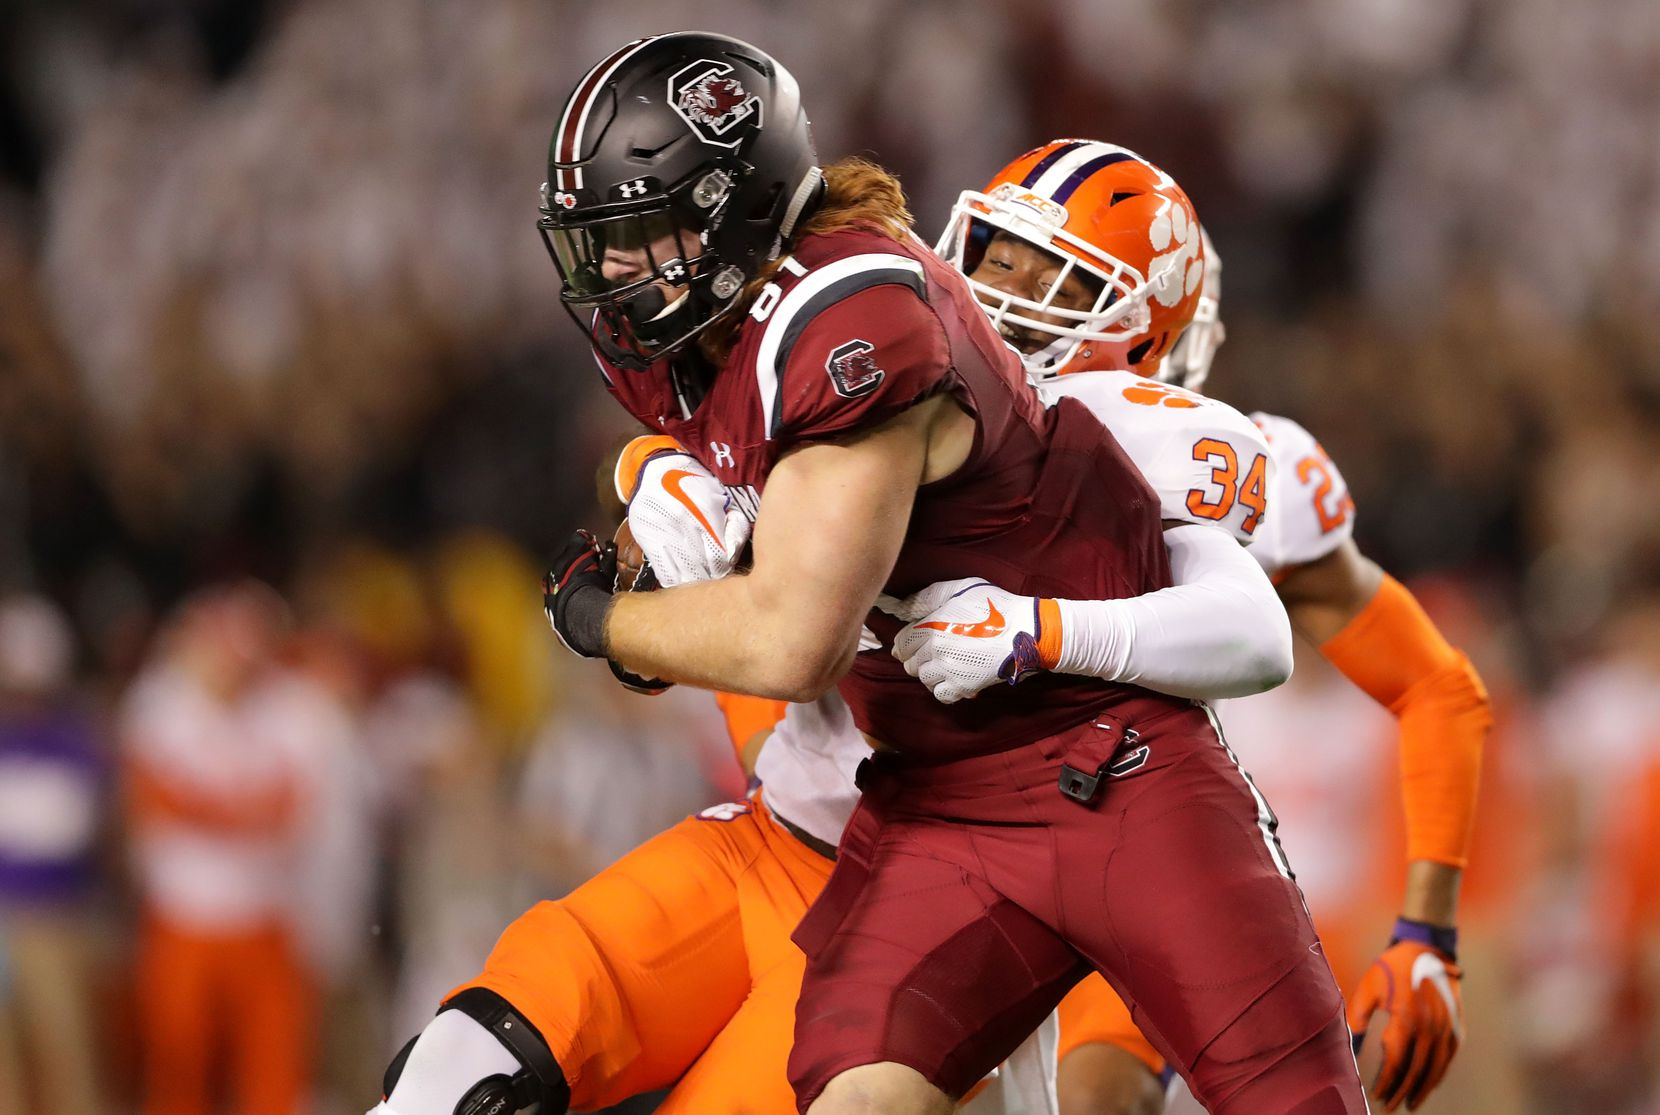 COLUMBIA, SC - NOVEMBER 25:  Kendall Joseph (#34) of the Clemson Tigers tries to stop Hayden Hurst (#81) of the South Carolina Gamecocks during their game at Williams-Brice Stadium on Nov. 25, 2017, in Columbia, S.C.  (Photo by Streeter Lecka/Getty Images)